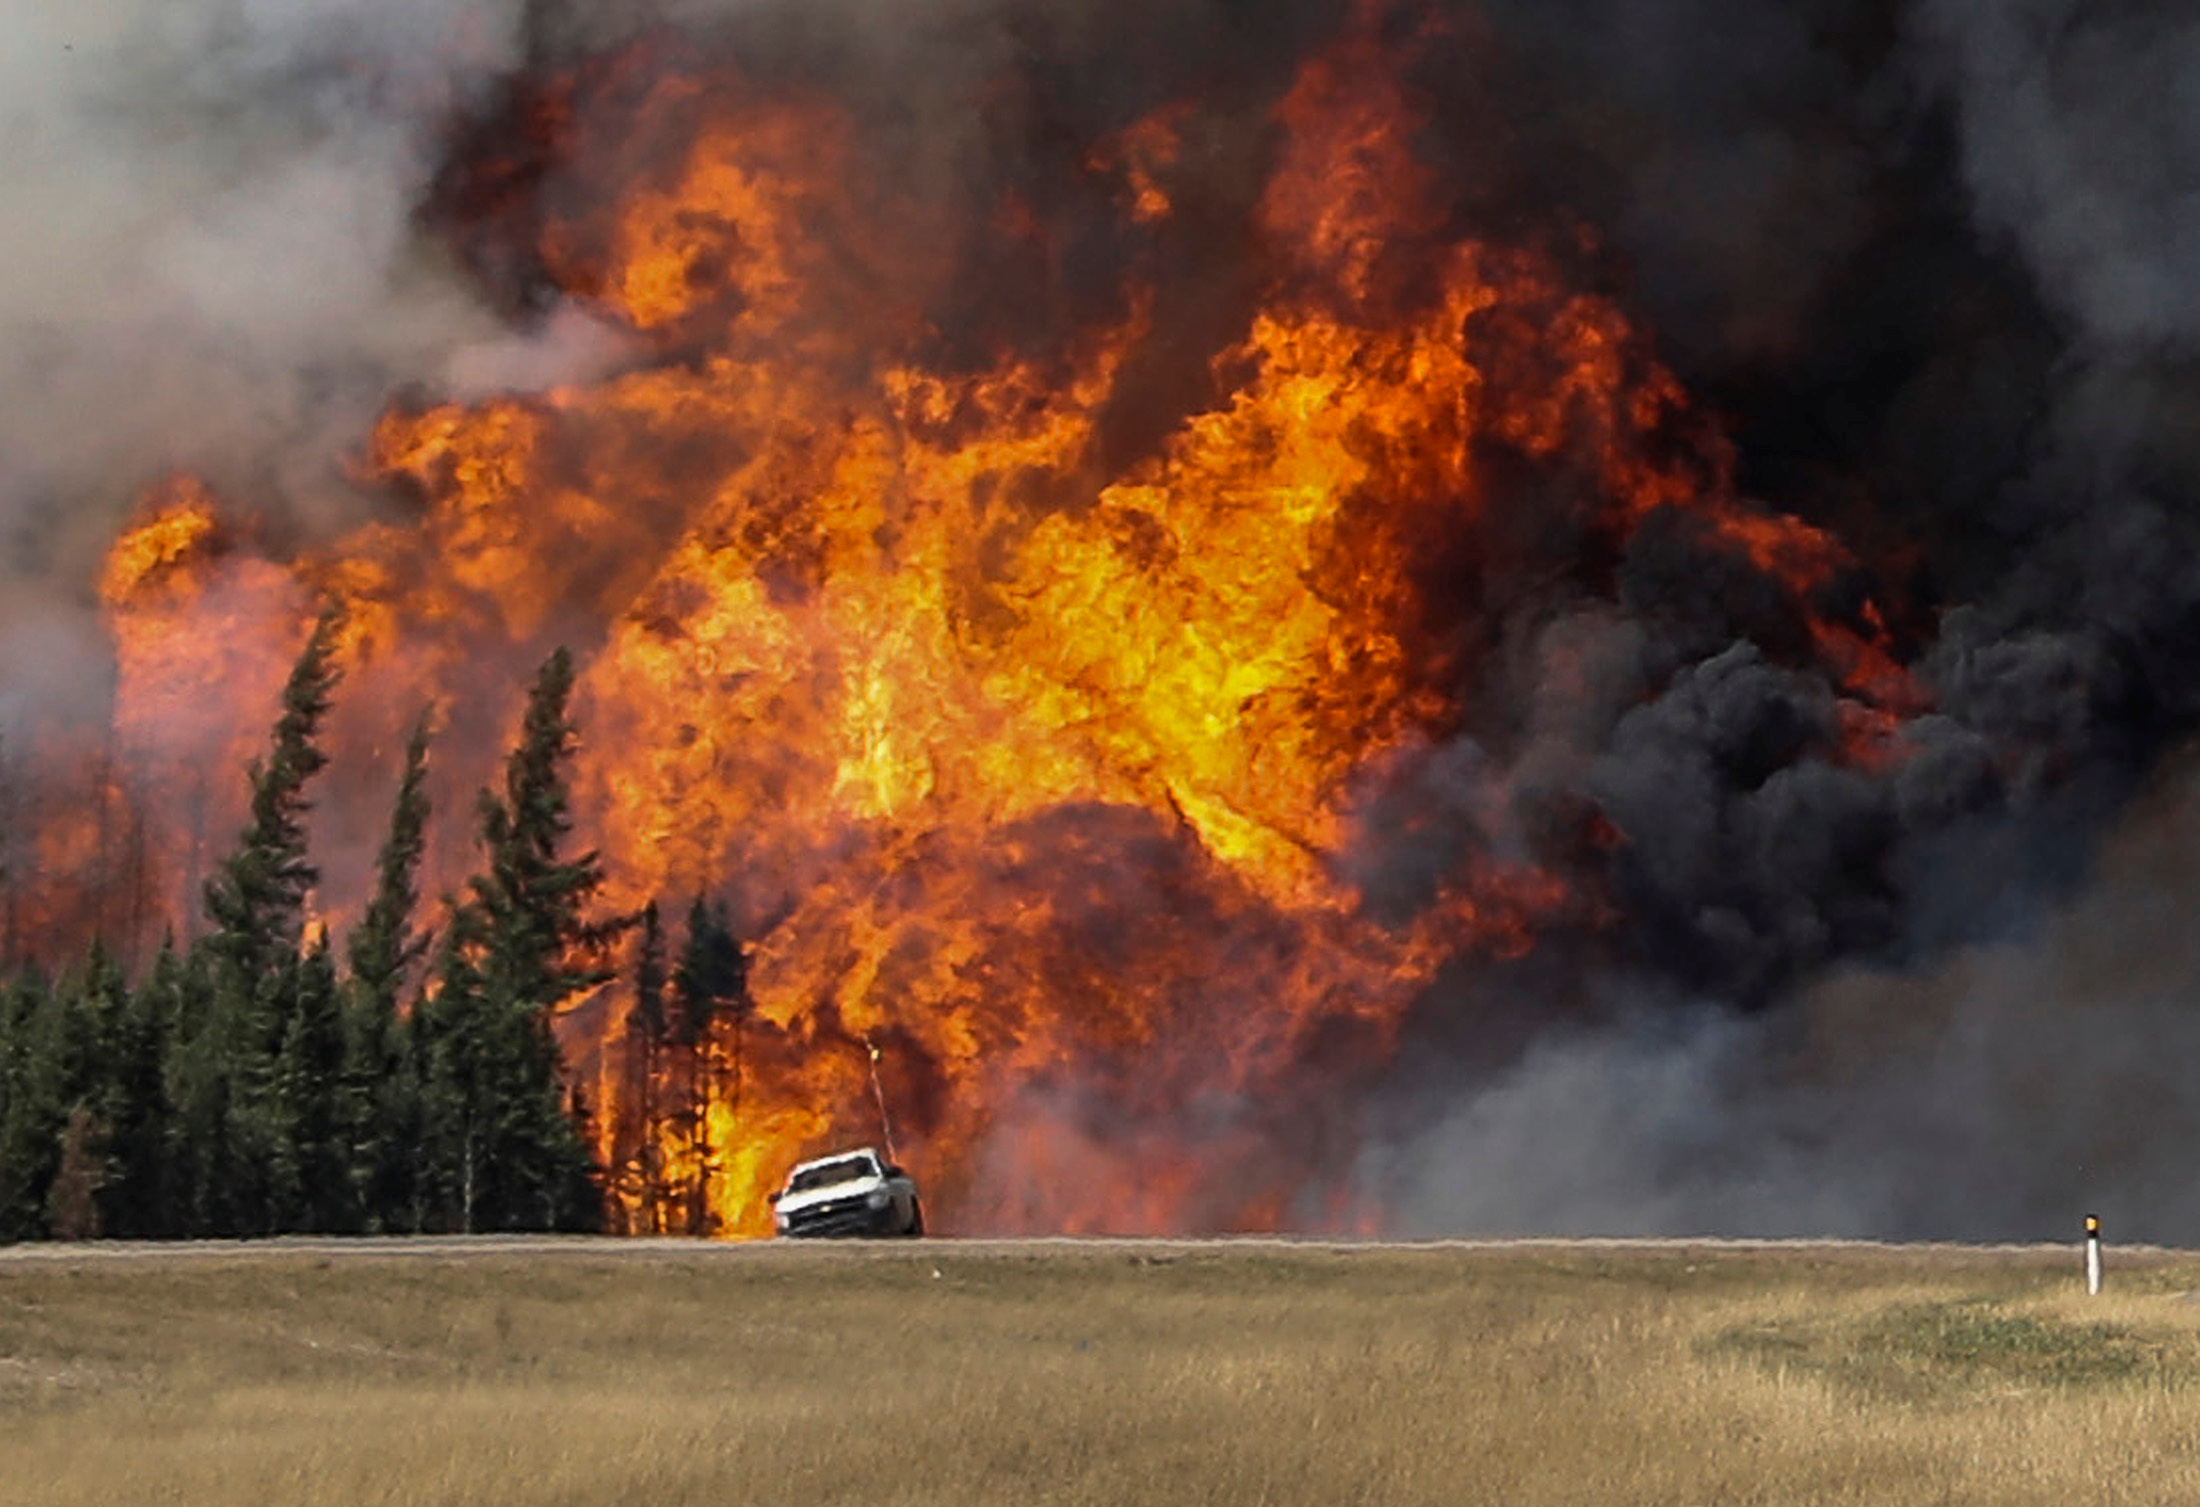 Smoke and flames from the wildfires erupt behind a car on the highway near Fort McMurray, Alberta, Canada, May 7, 2016.